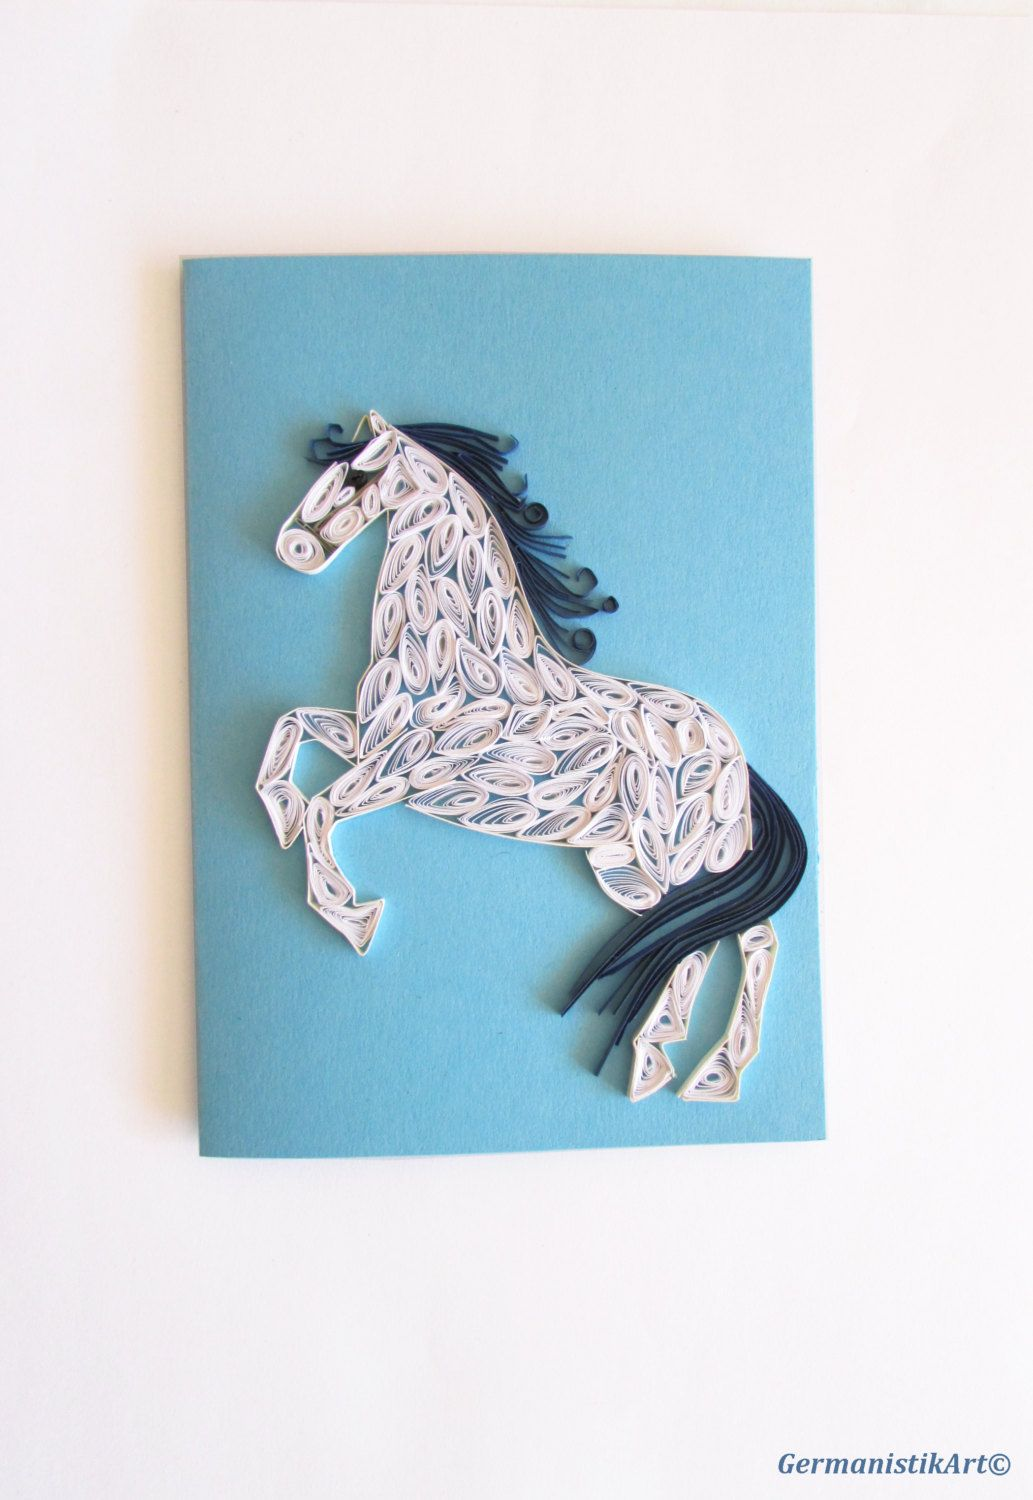 Horse quilling card white horse greeting card blue horse year card horse quilling card white horse greeting card blue horse year card quilling card greeting card quilled card horse quilling horse card horse art horse m4hsunfo